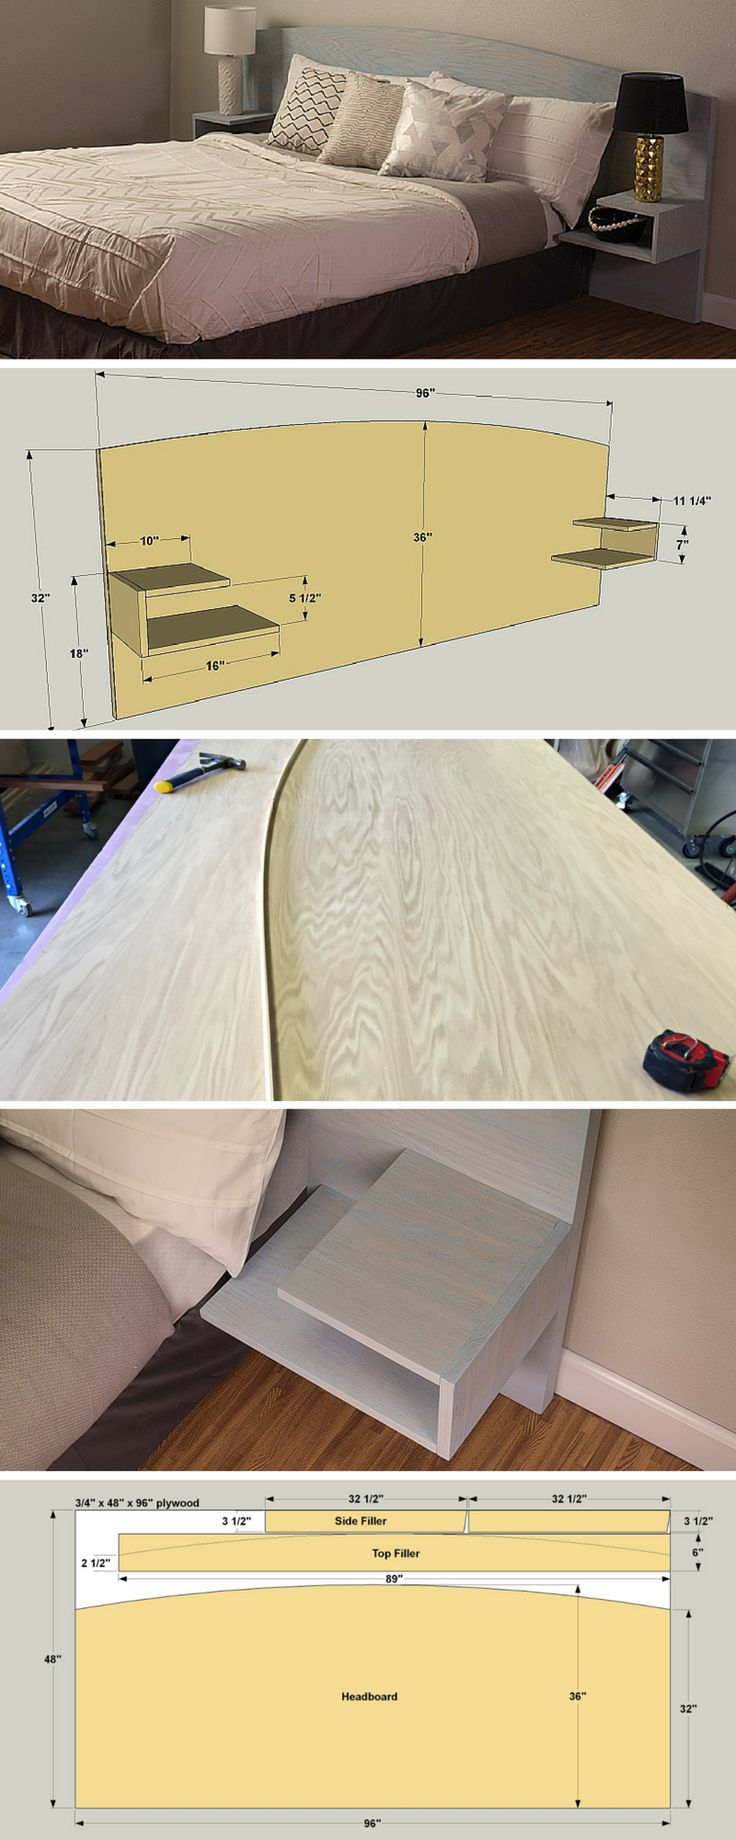 This great-looking headboard features an arched top and floating side tables. By changing the finish, you can customize it to match your style. This one is designed for a Queen mattress. The whole thing is made from one sheet of oak plywood, an oak 1x12 board, and two rolls of iron-on veneer edging. Get the free DIY plans at buildsomething.com